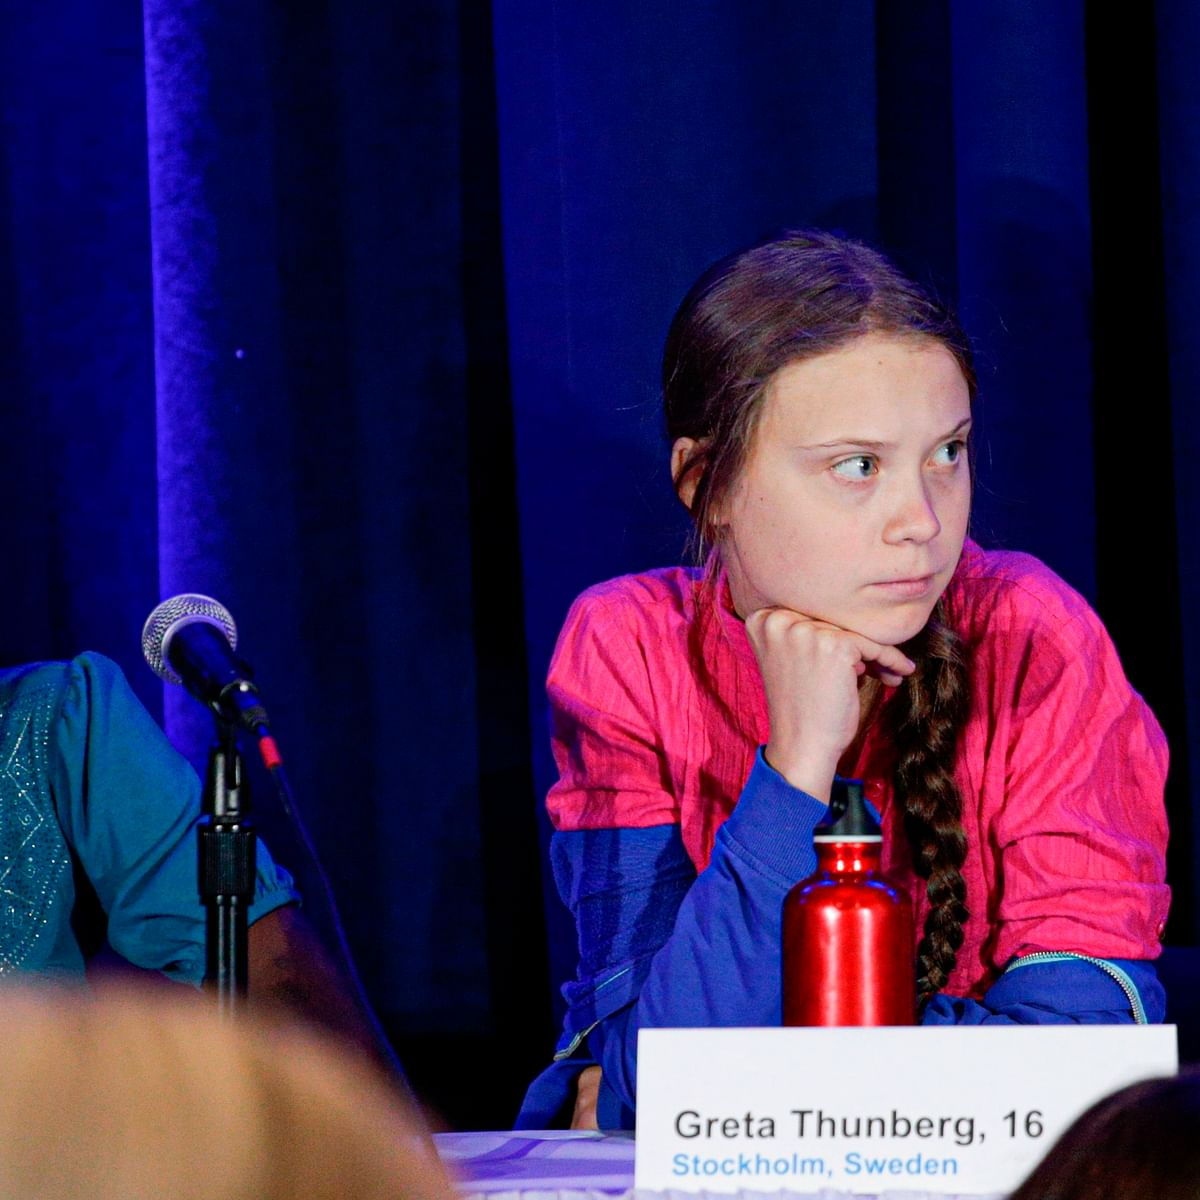 'He seems like a...': As Trump exits White House, Greta Thunberg 'recycles' his old tweet to take a parting shot